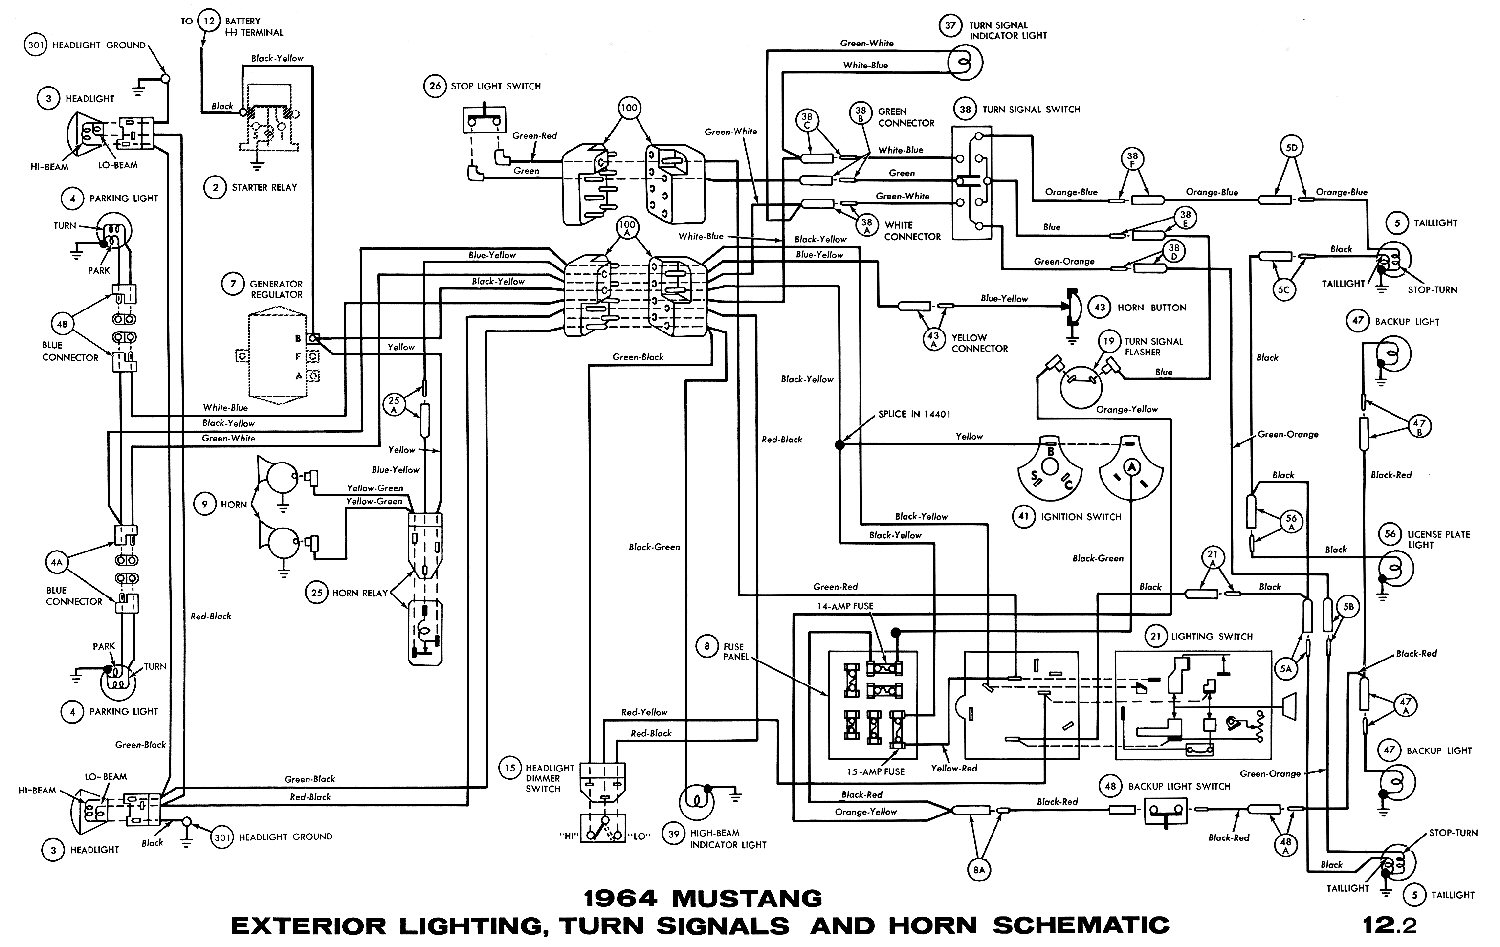 1964i wiring diagram for 1971 mustang readingrat net 65 mustang engine wiring diagram at soozxer.org